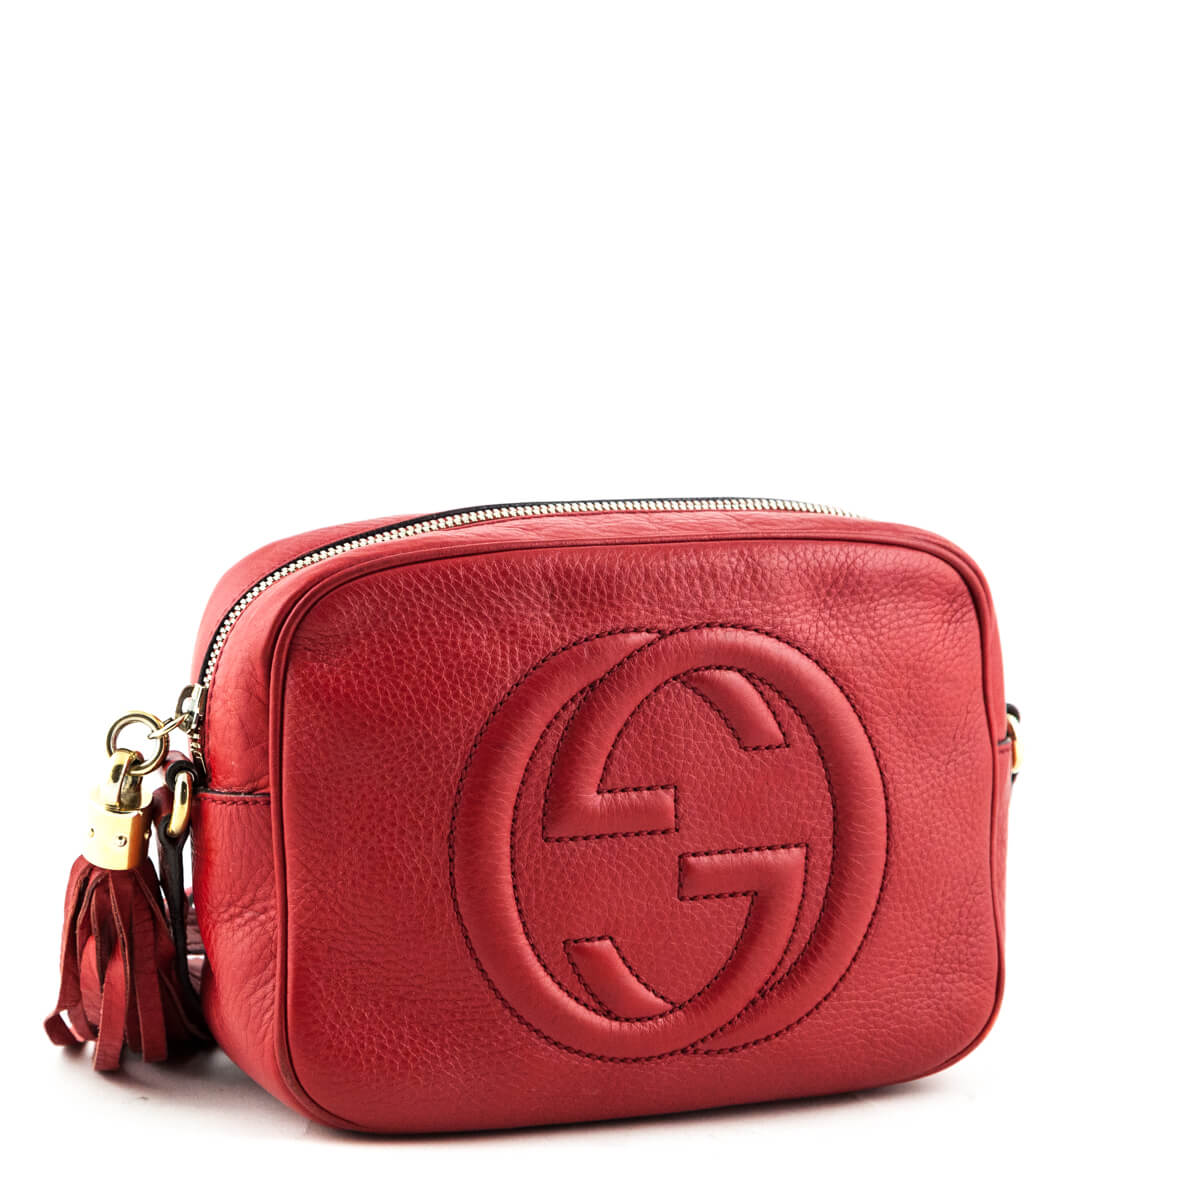 1aac97d470a4 ... Gucci Red Soho Disco - LOVE that BAG - Preowned Authentic Designer  Handbags ...